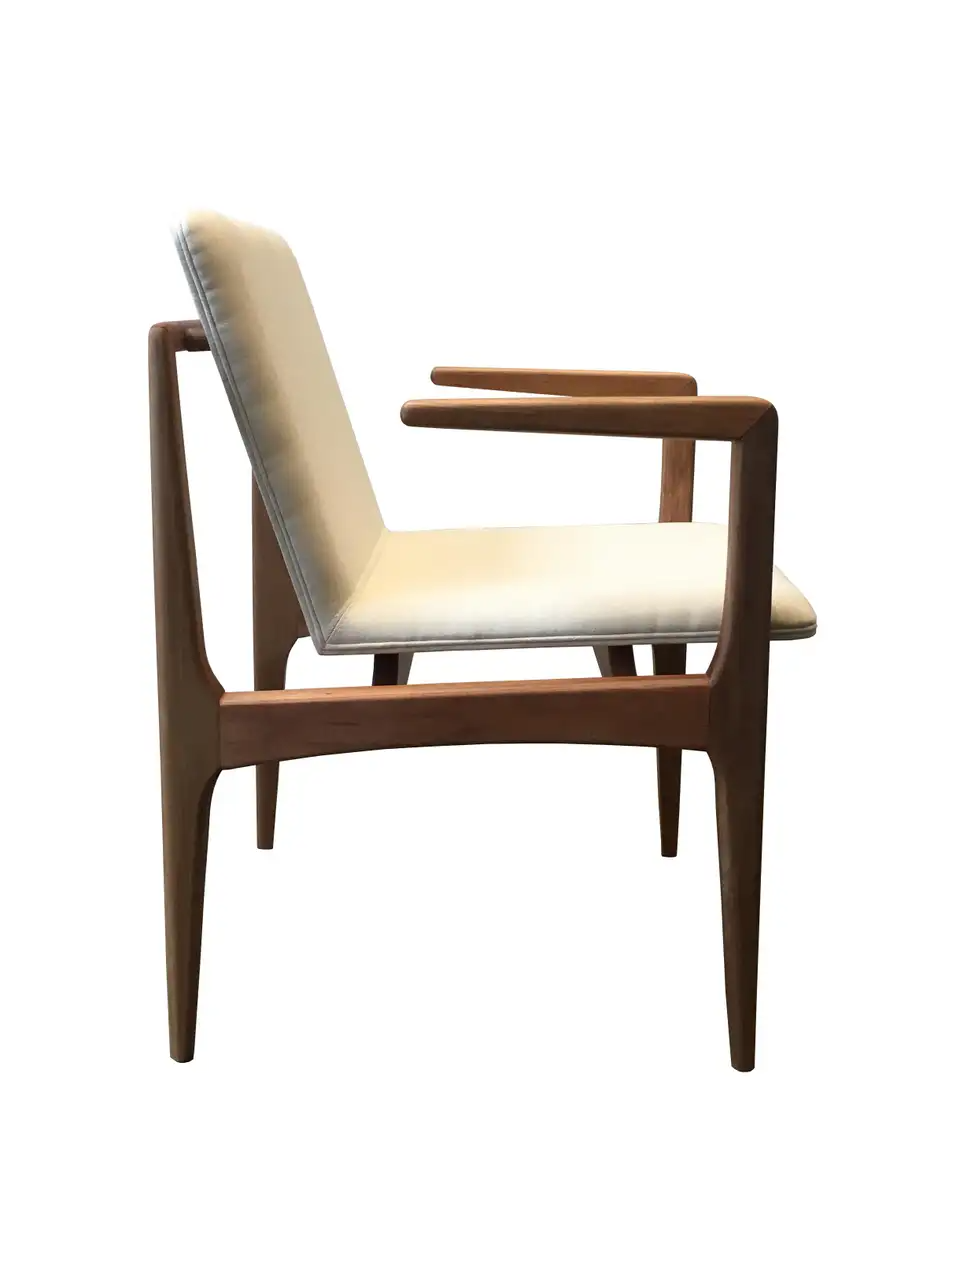 Oscar Minimalist Chair With Arms In Solid Jequitiba Wood And Handwoven In 2020 Minimalist Chair Chair Wrought Iron Patio Chairs